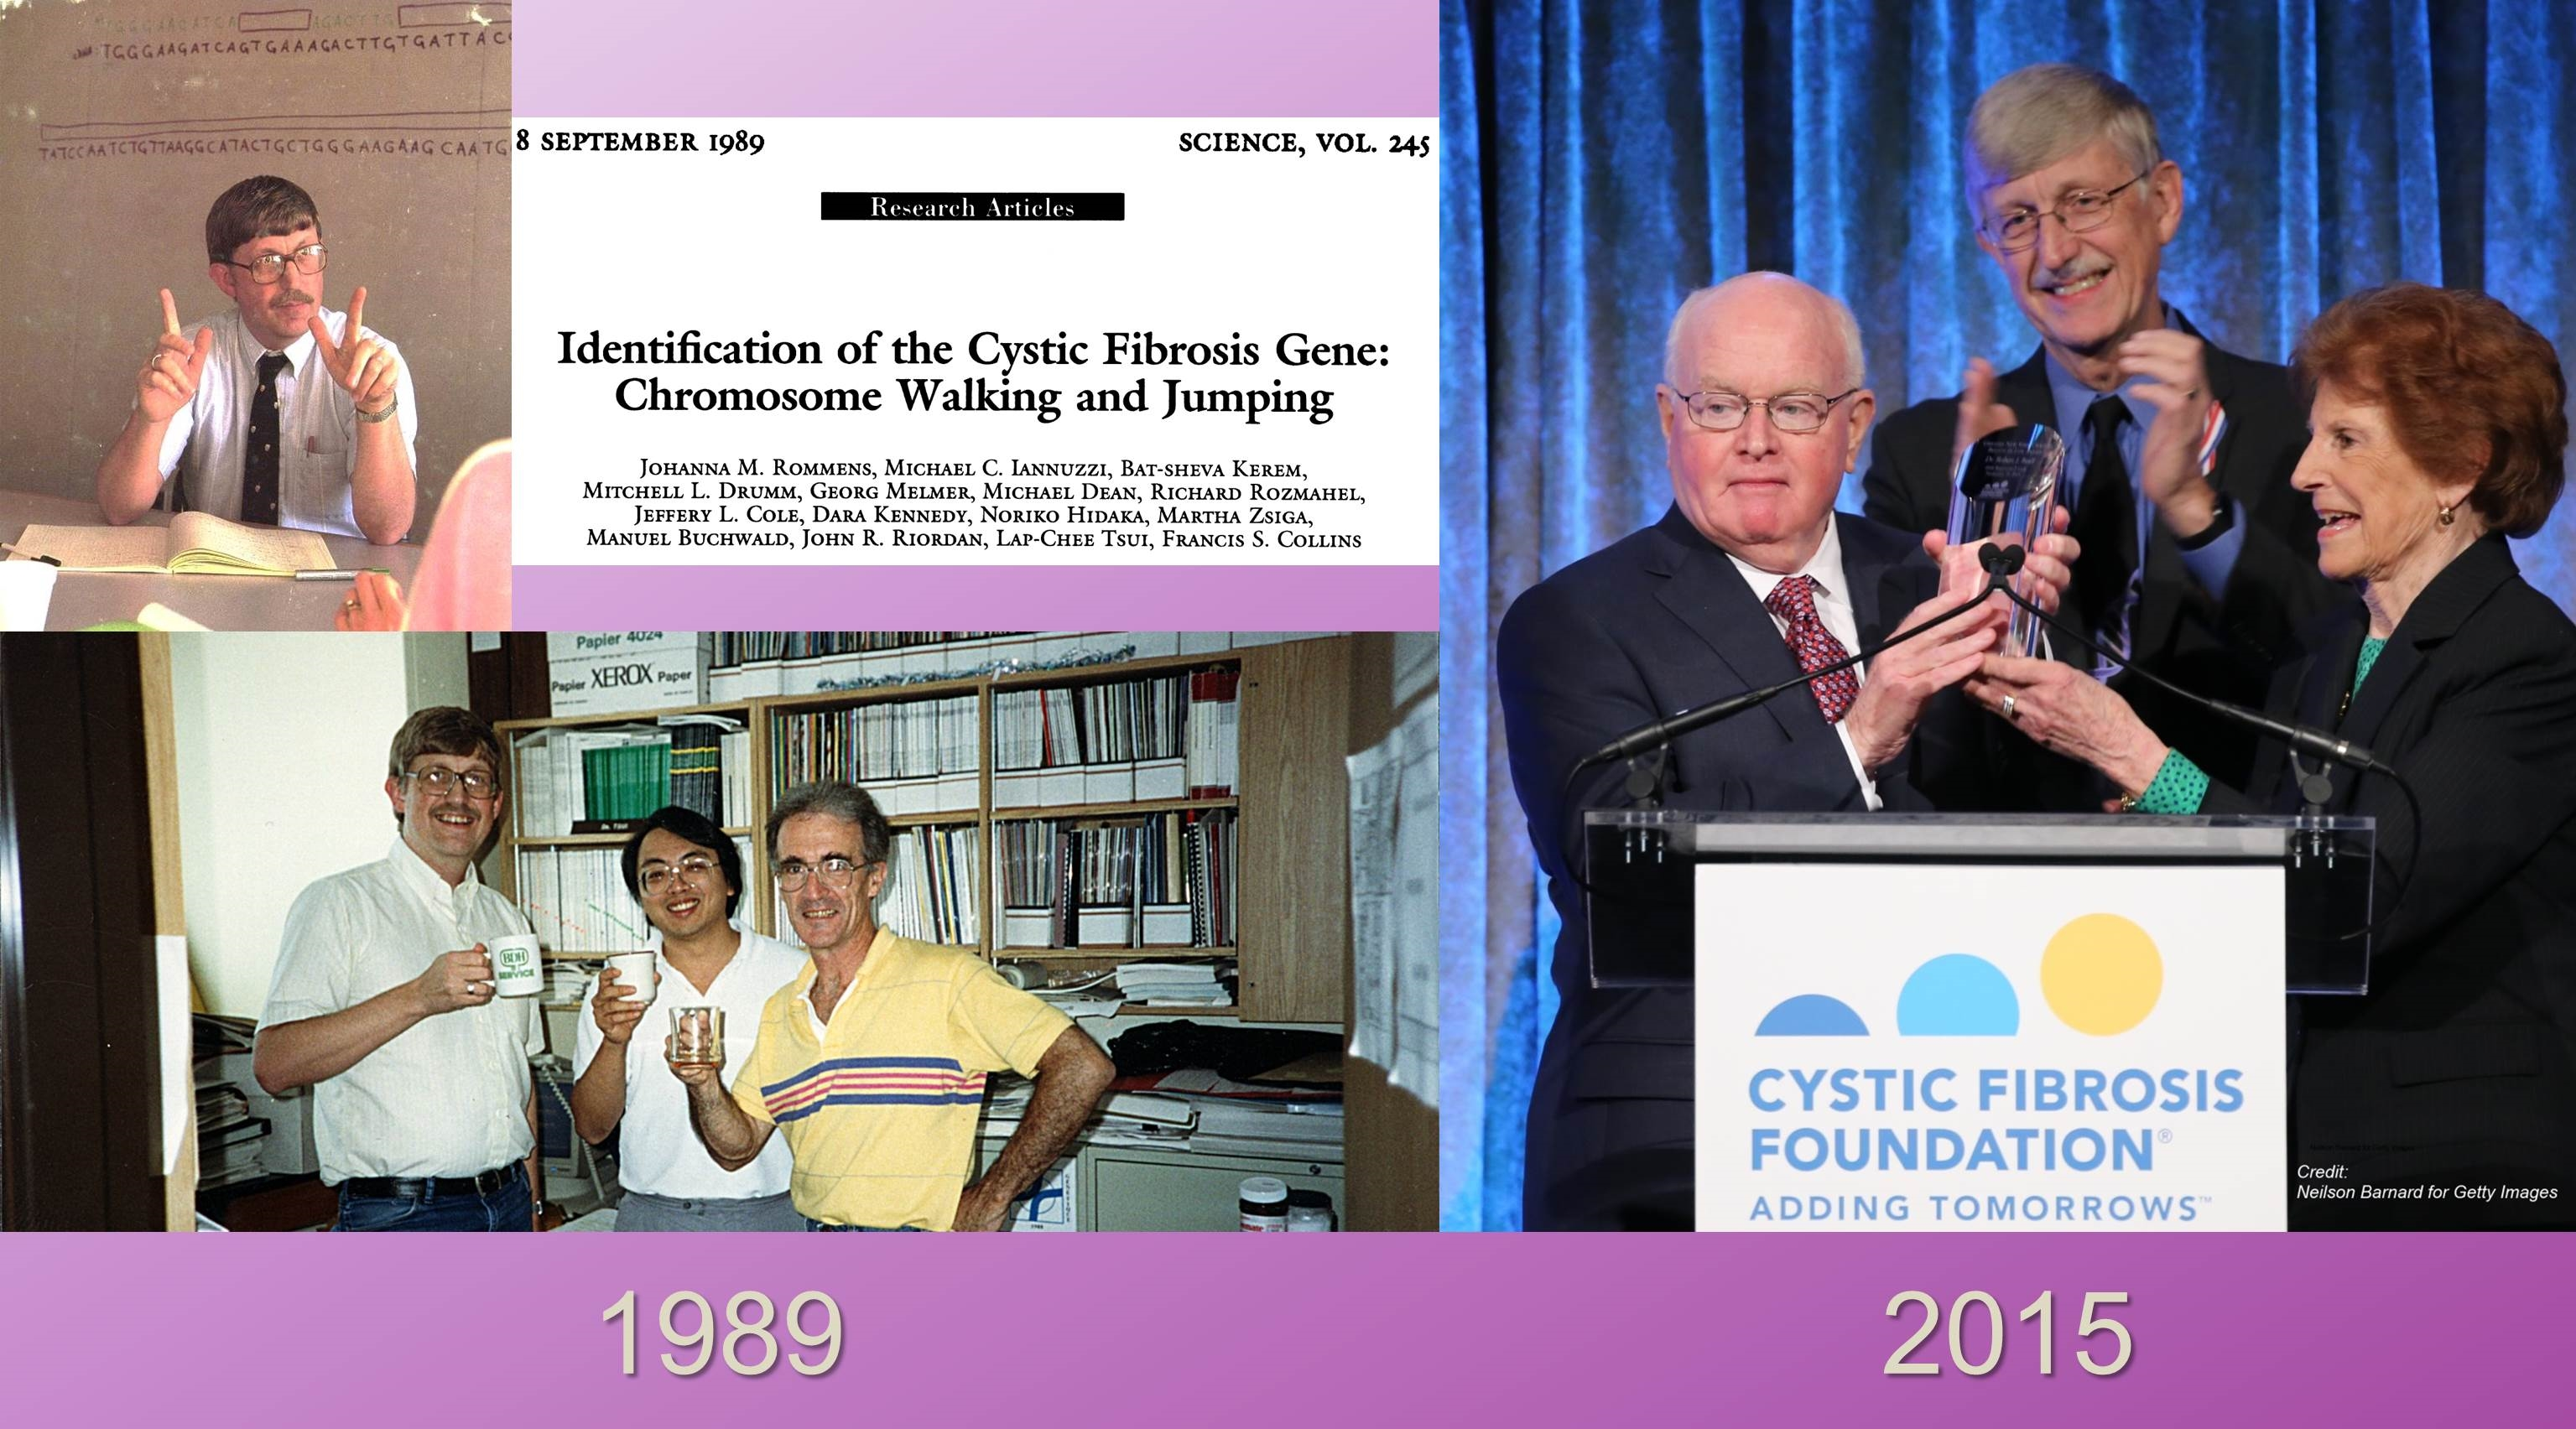 Cystic Fibrosis: Keeping the Momentum Going